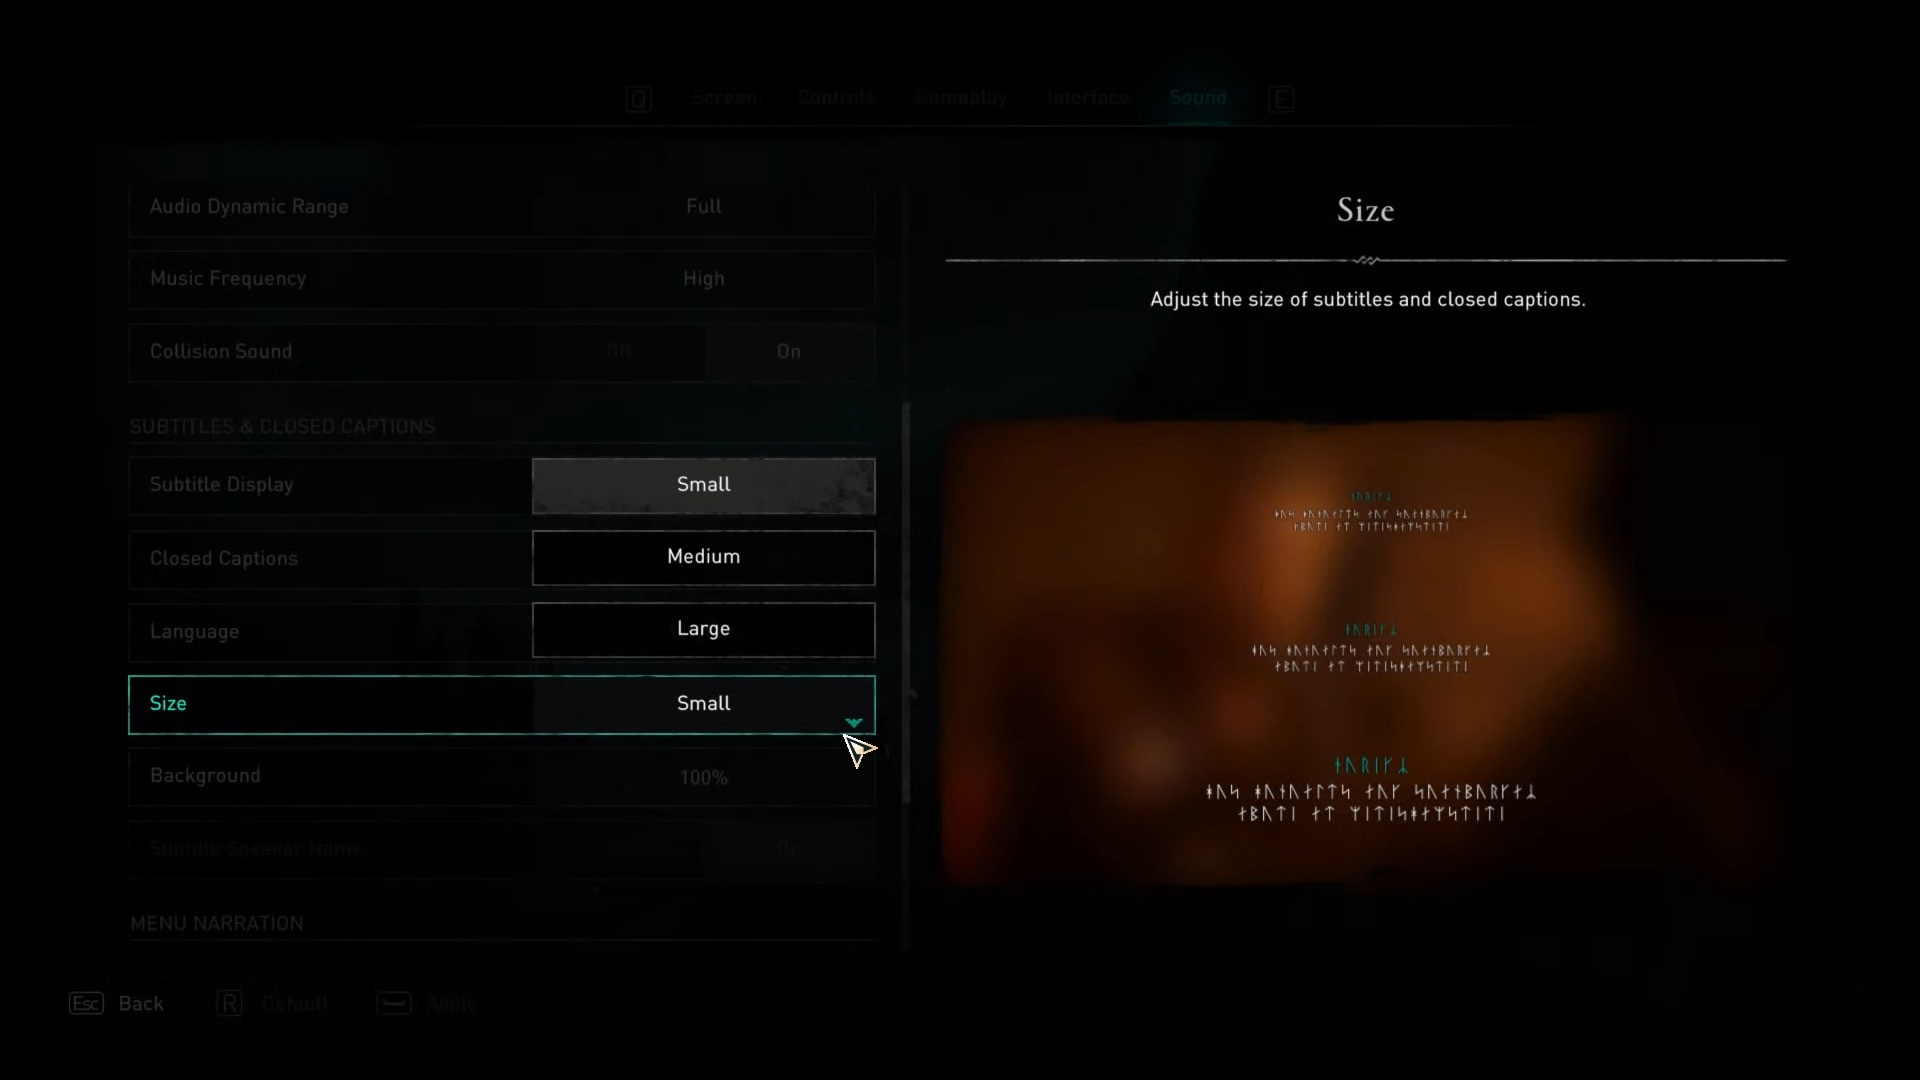 Size of subtitles in sound options of Assassin's Creed Valhalla